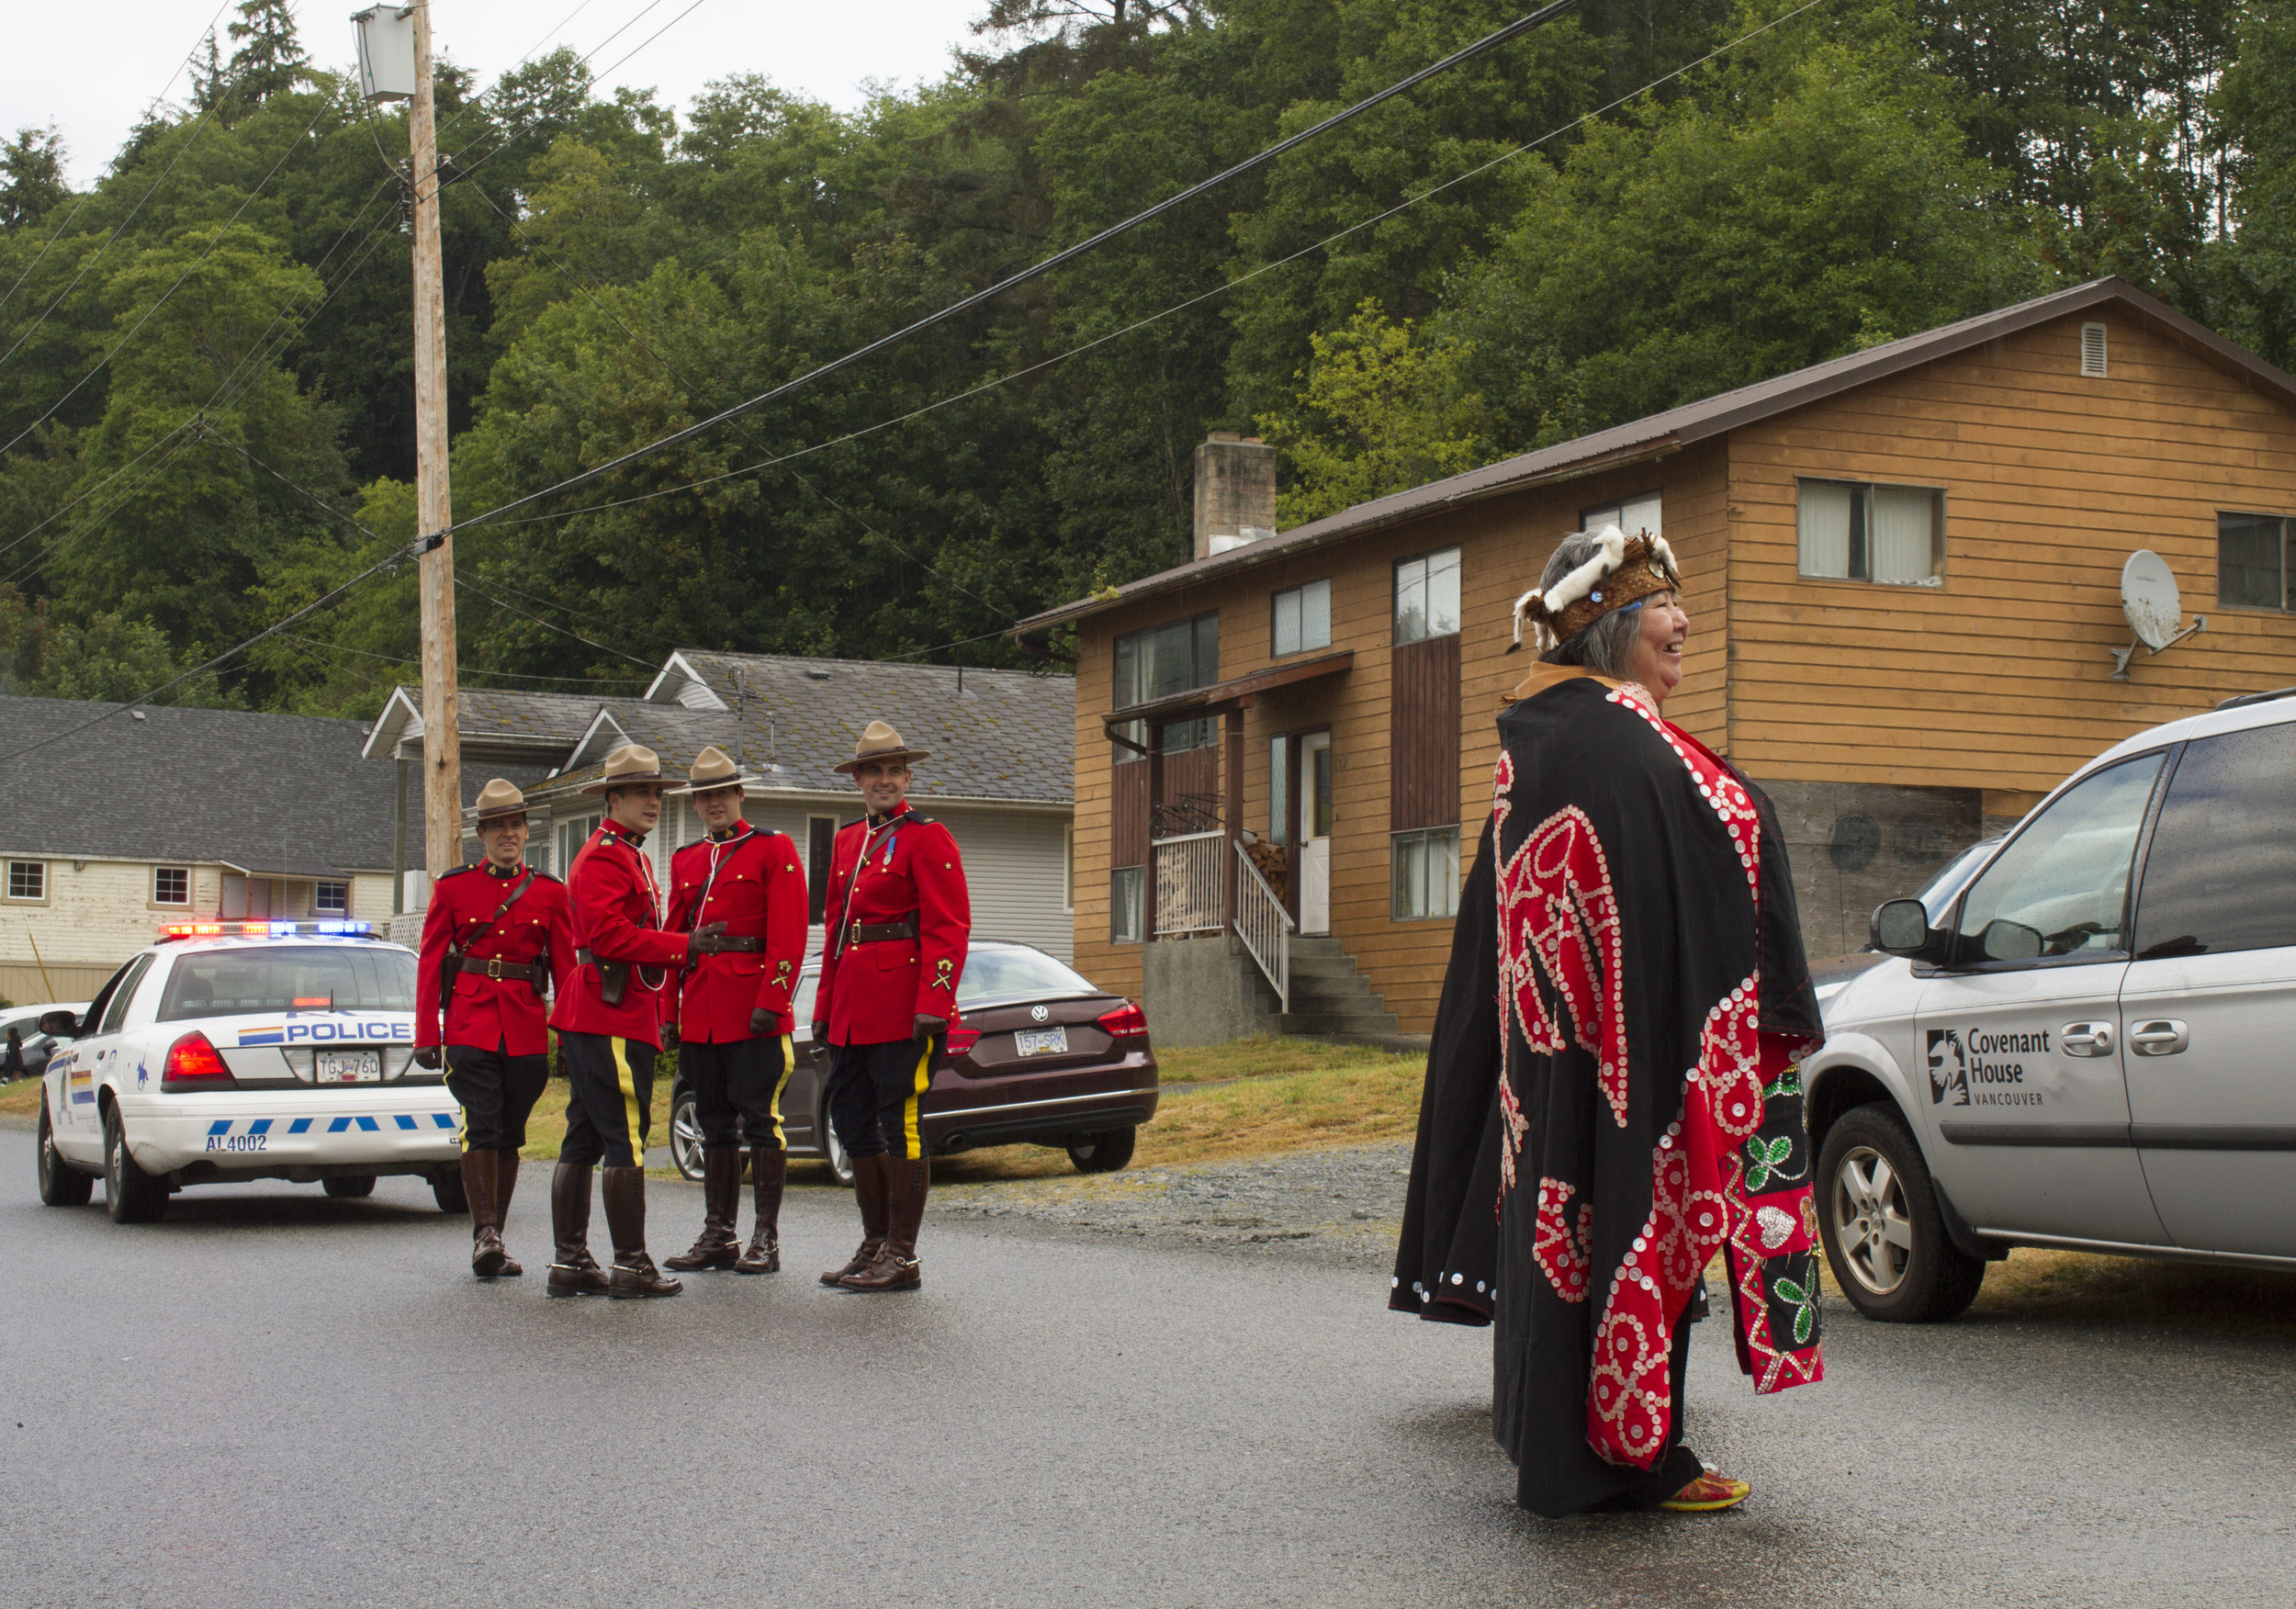 'Namgis First Nation Chief Debra Hanuse and RCMP wait to begin the June Sports parade in Alert Bay, B.C.  © North Island Gazette